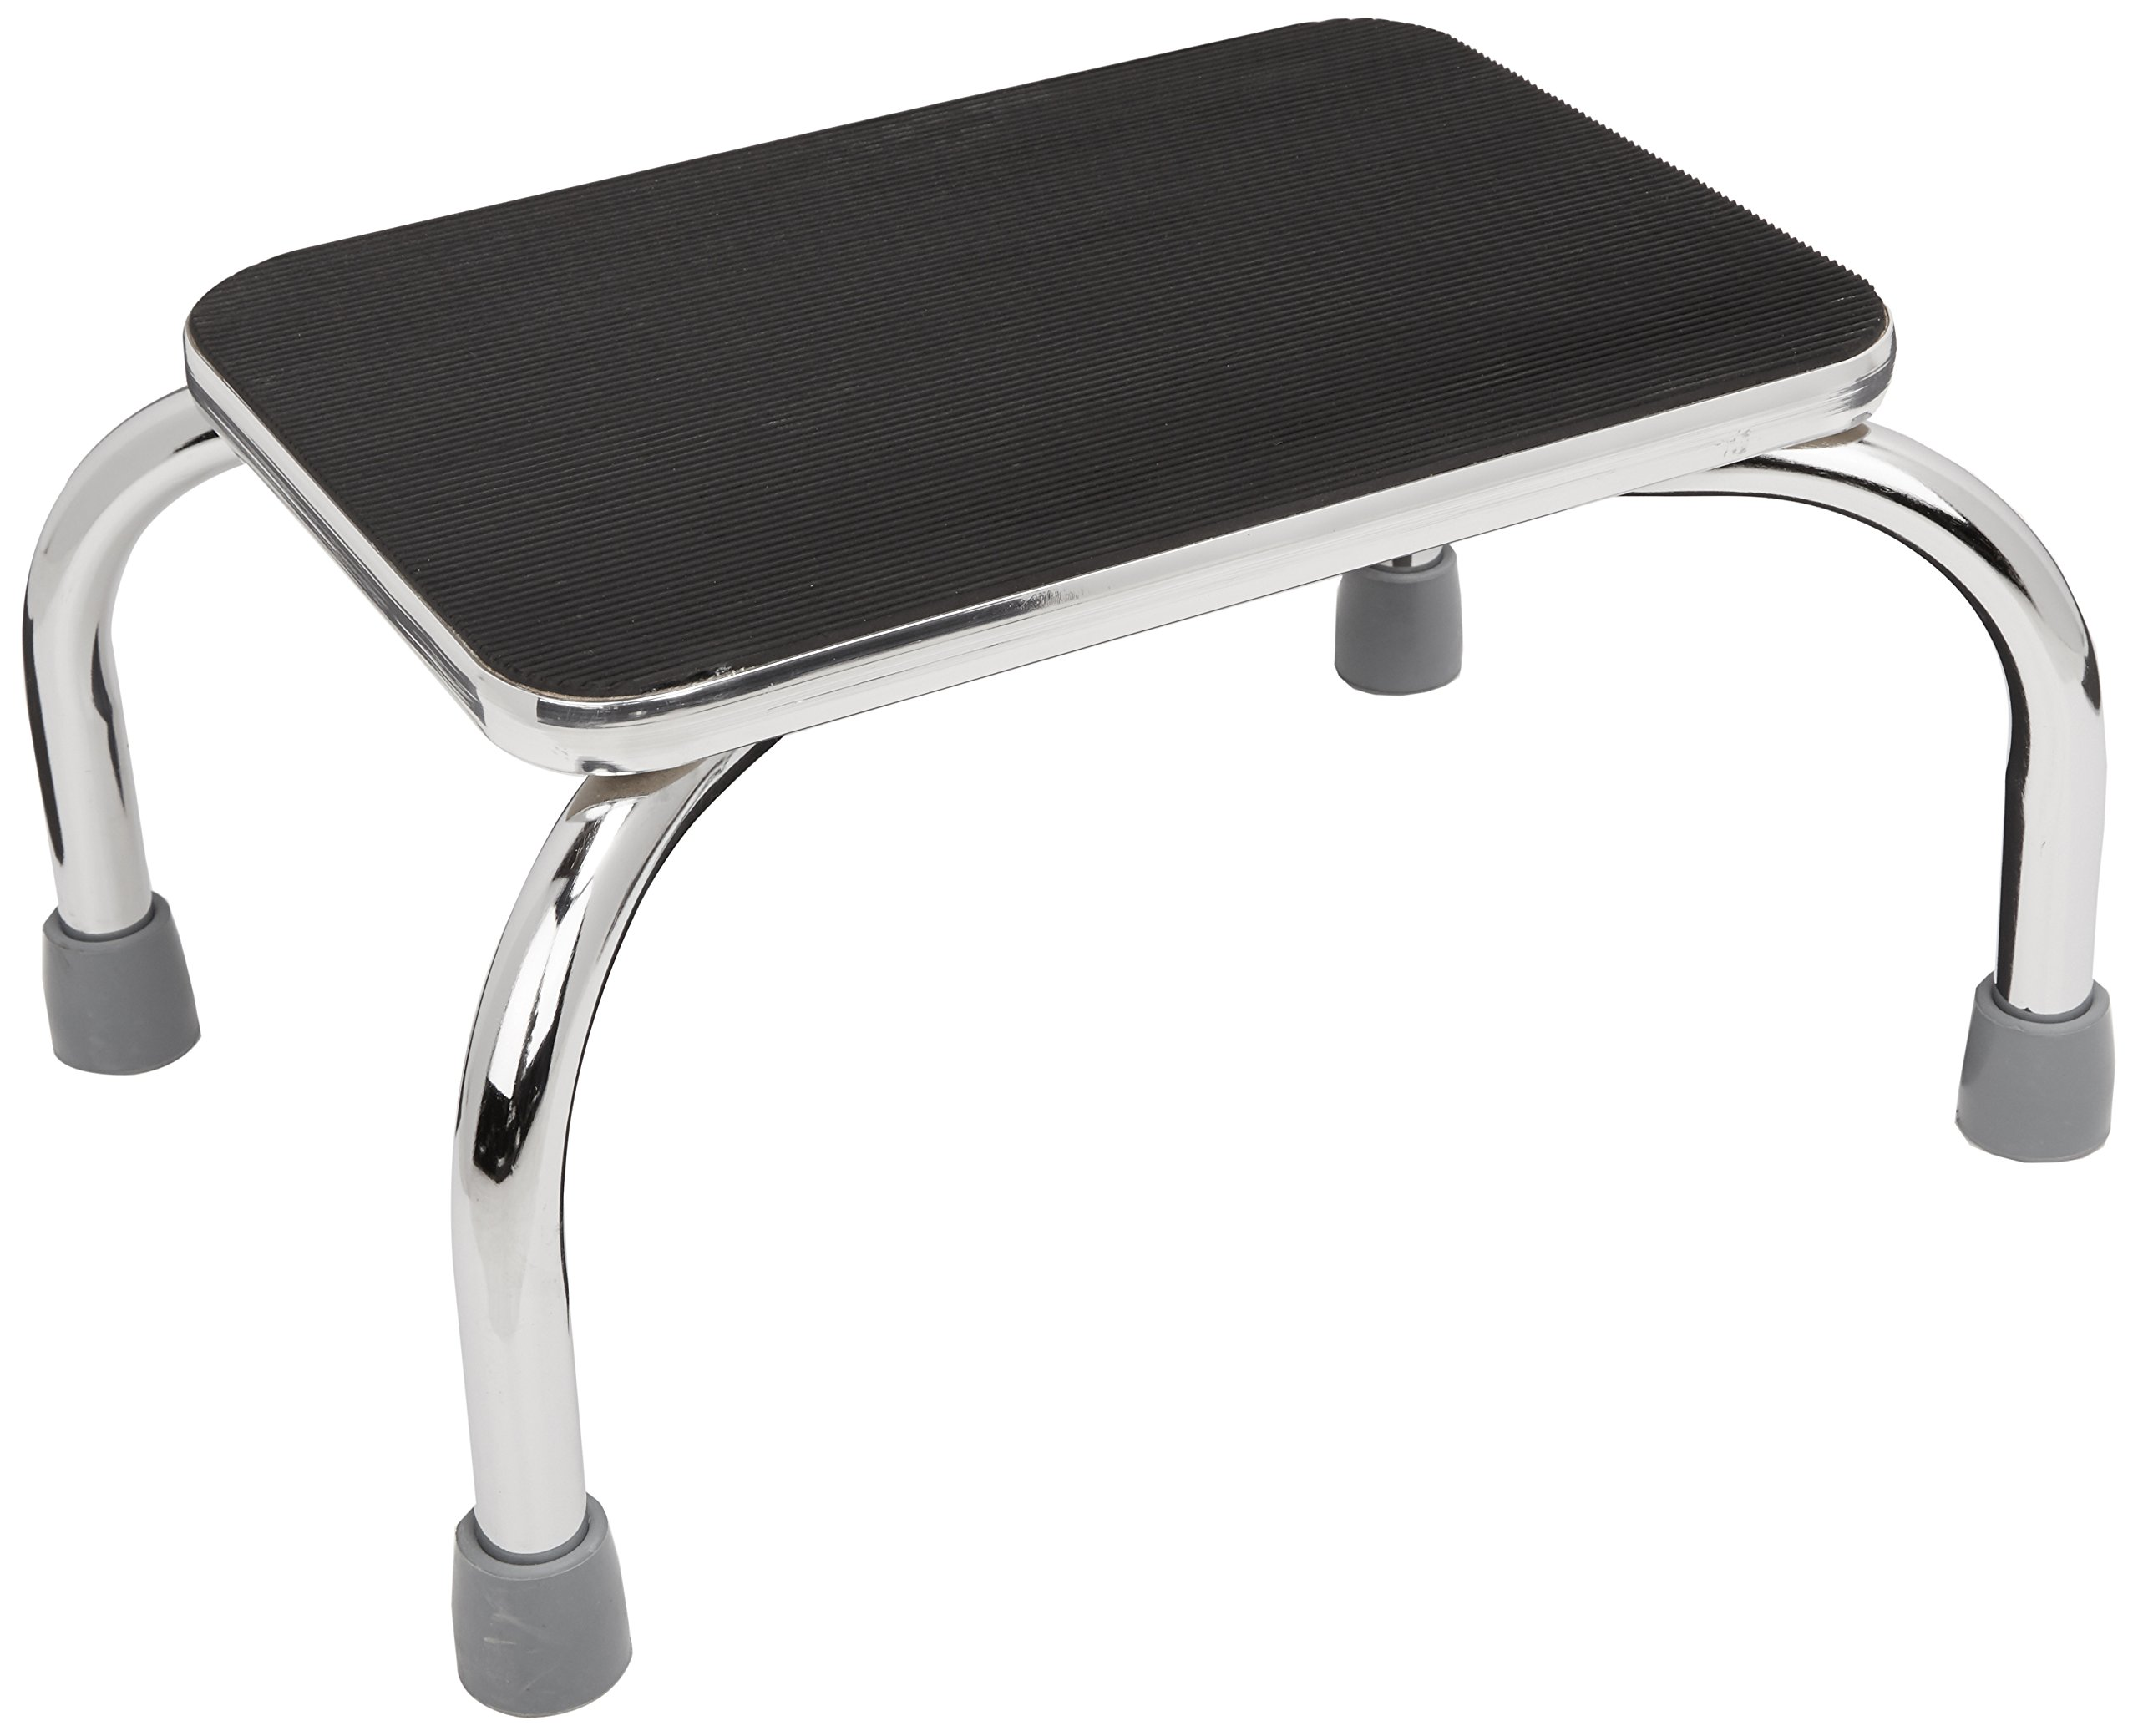 Sammons Preston Footstool, Foot Step Stool with Rubber Feet and Non Skid Rubber Platform Surface for Preventing Slipping, Bathroom and Kitchen Aid for Helping Individuals Reach Sinks and Cabinets